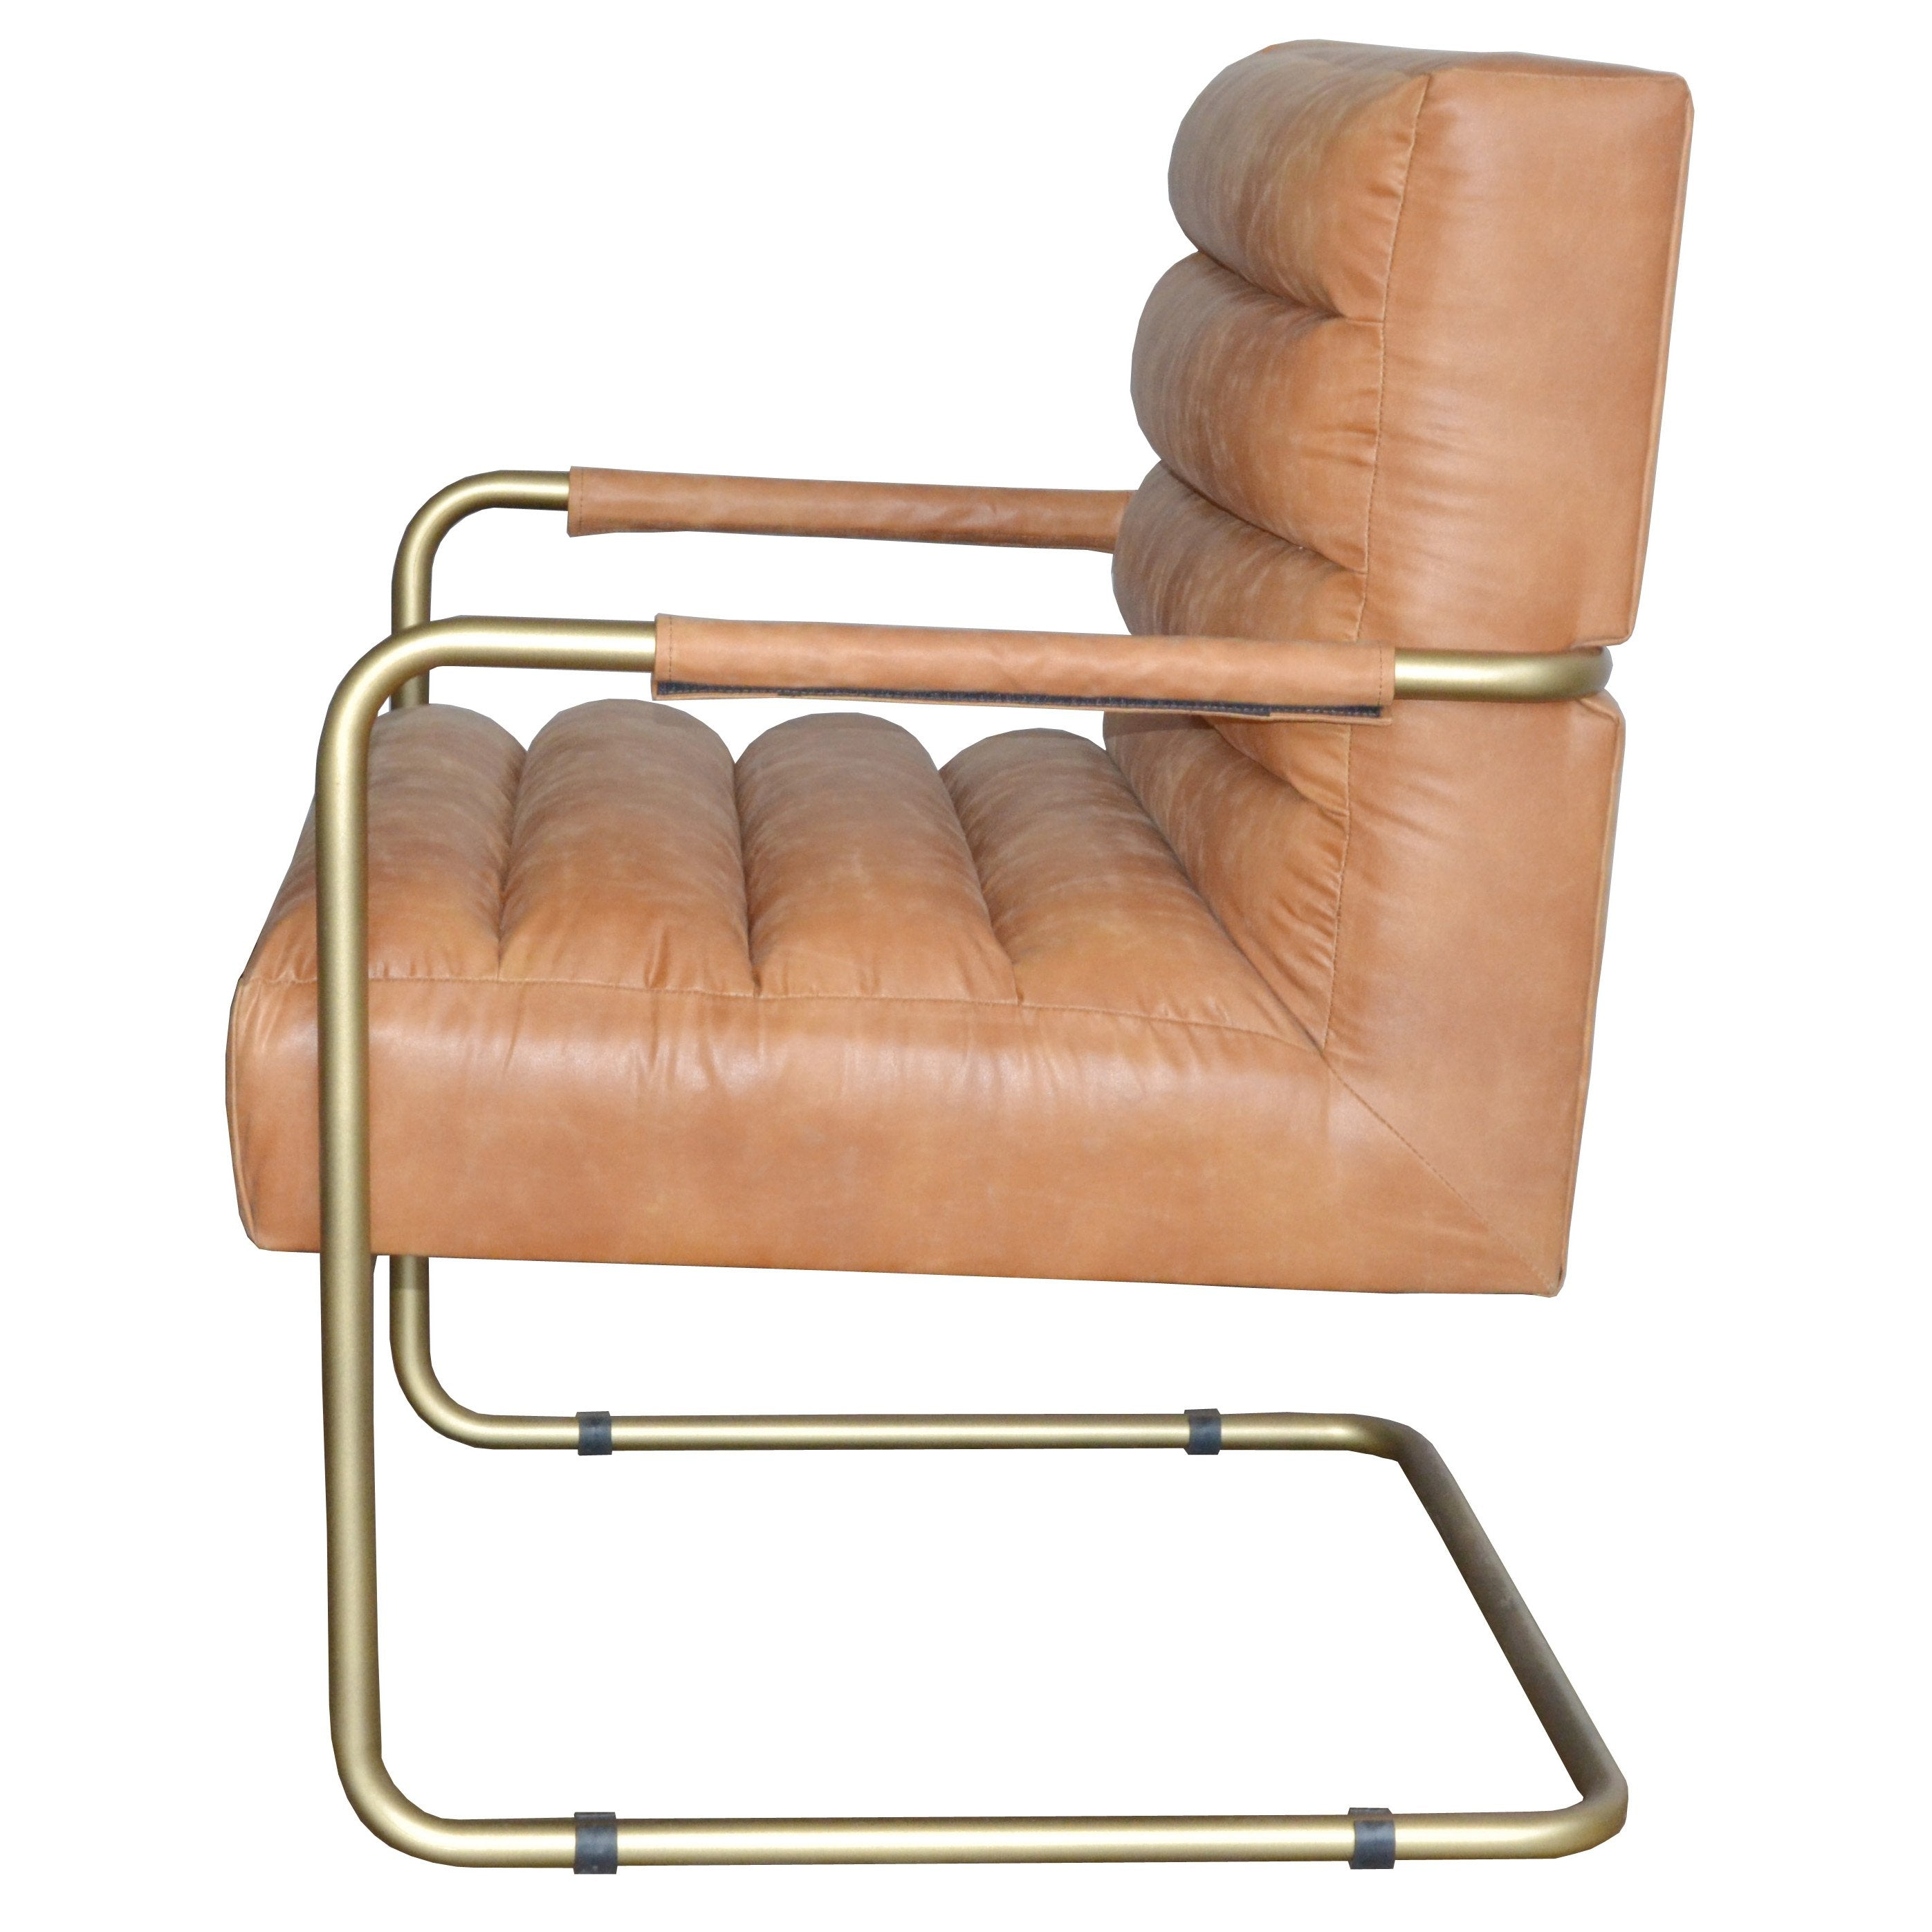 Astounding Mesquite Lounge Chair Vintage Copper Andrewgaddart Wooden Chair Designs For Living Room Andrewgaddartcom